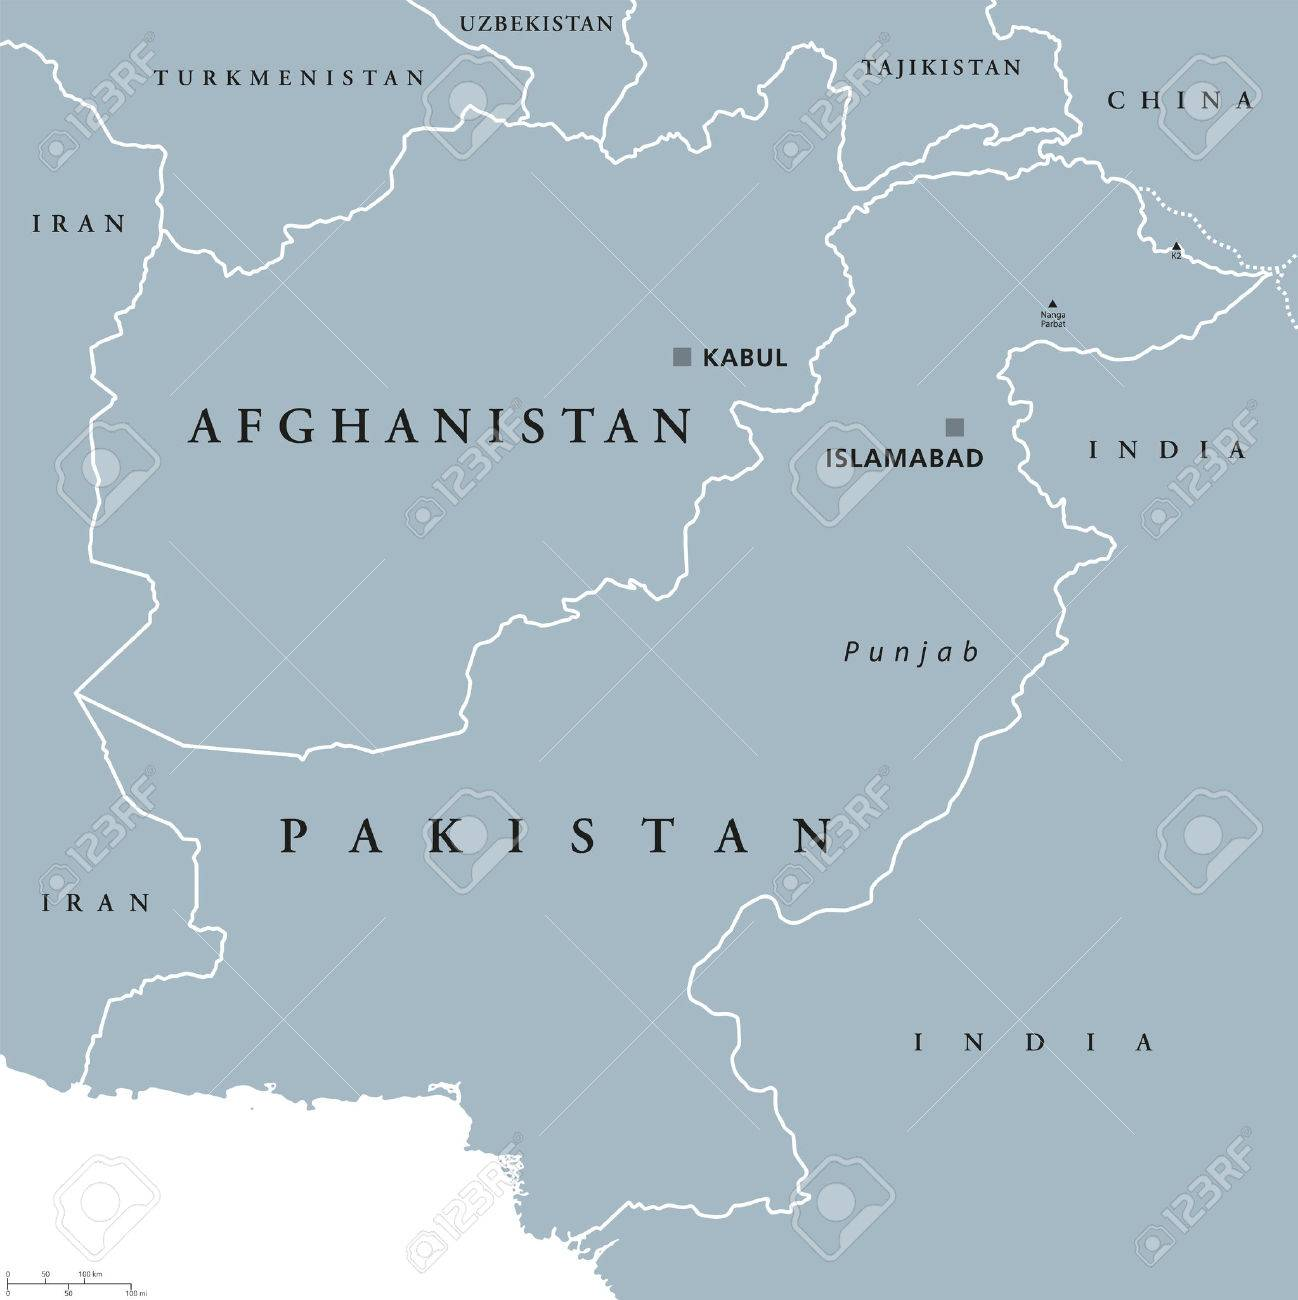 Afghanistan And Pakistan Political Map With Capitals Kabul And - China political map in english